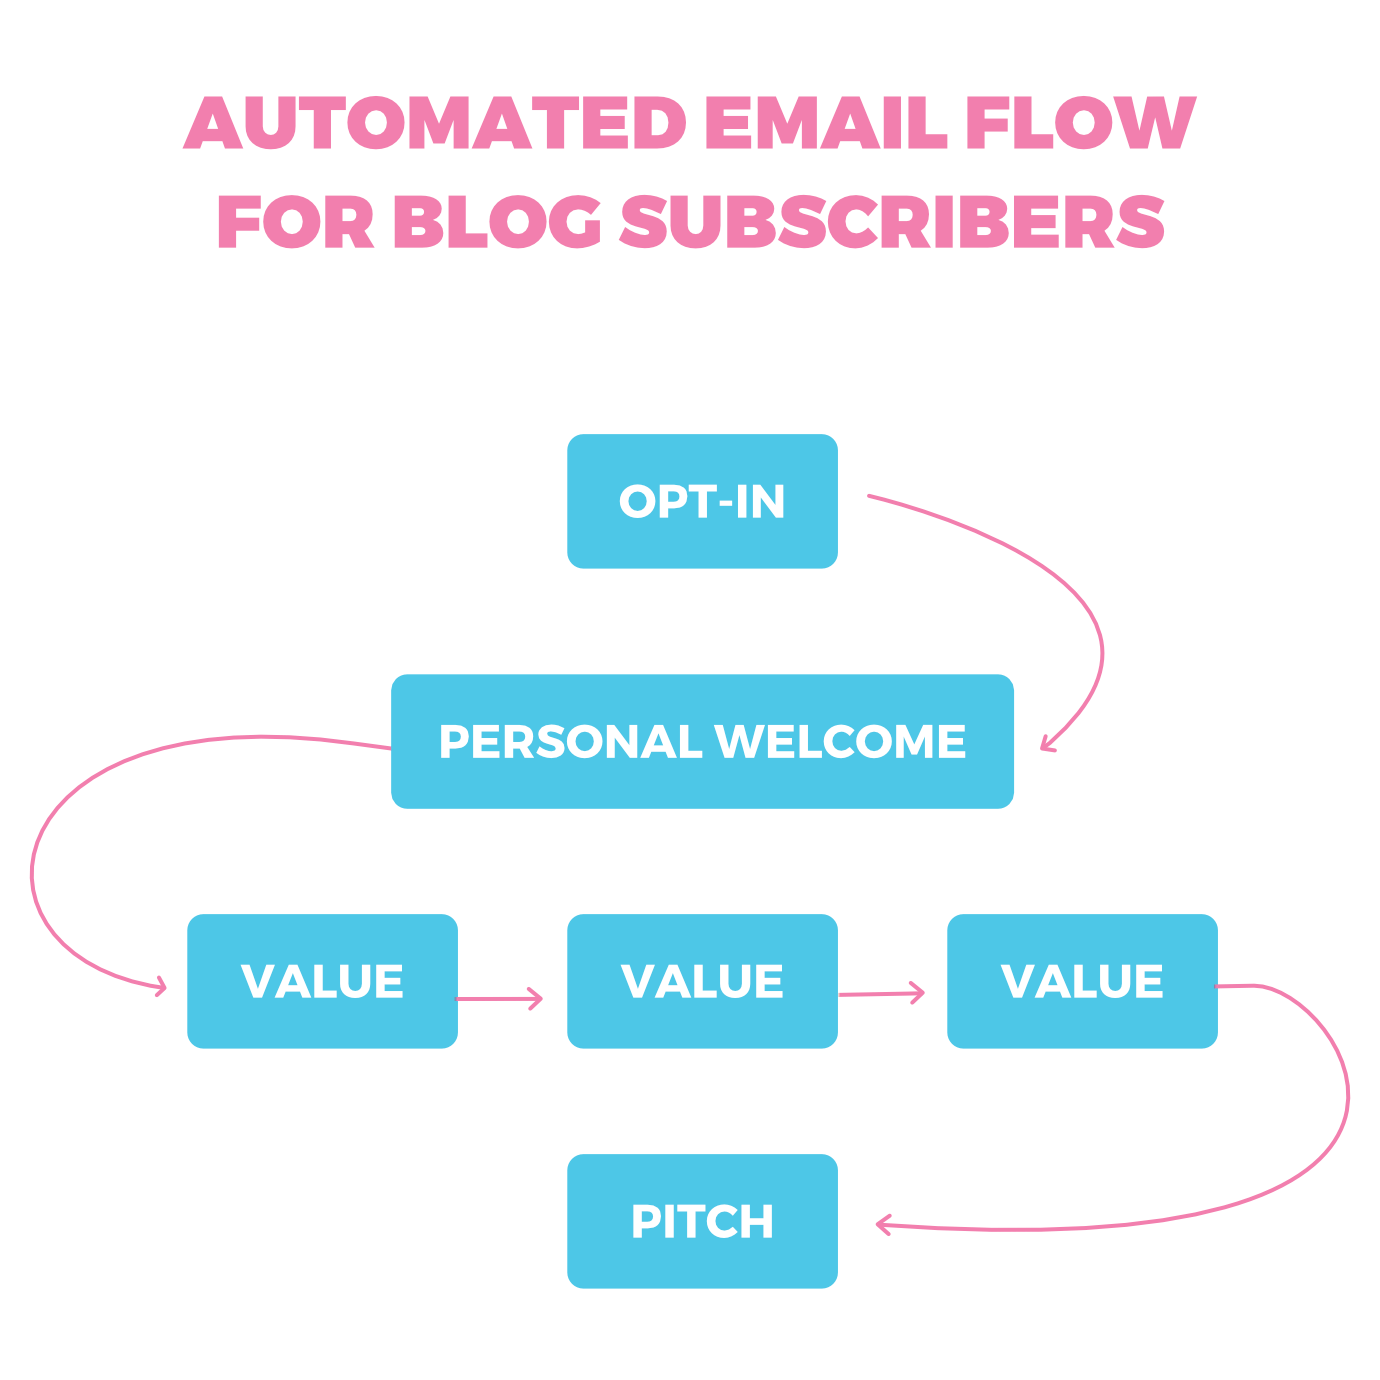 Groove HQ onboarding flow focuses on providing value